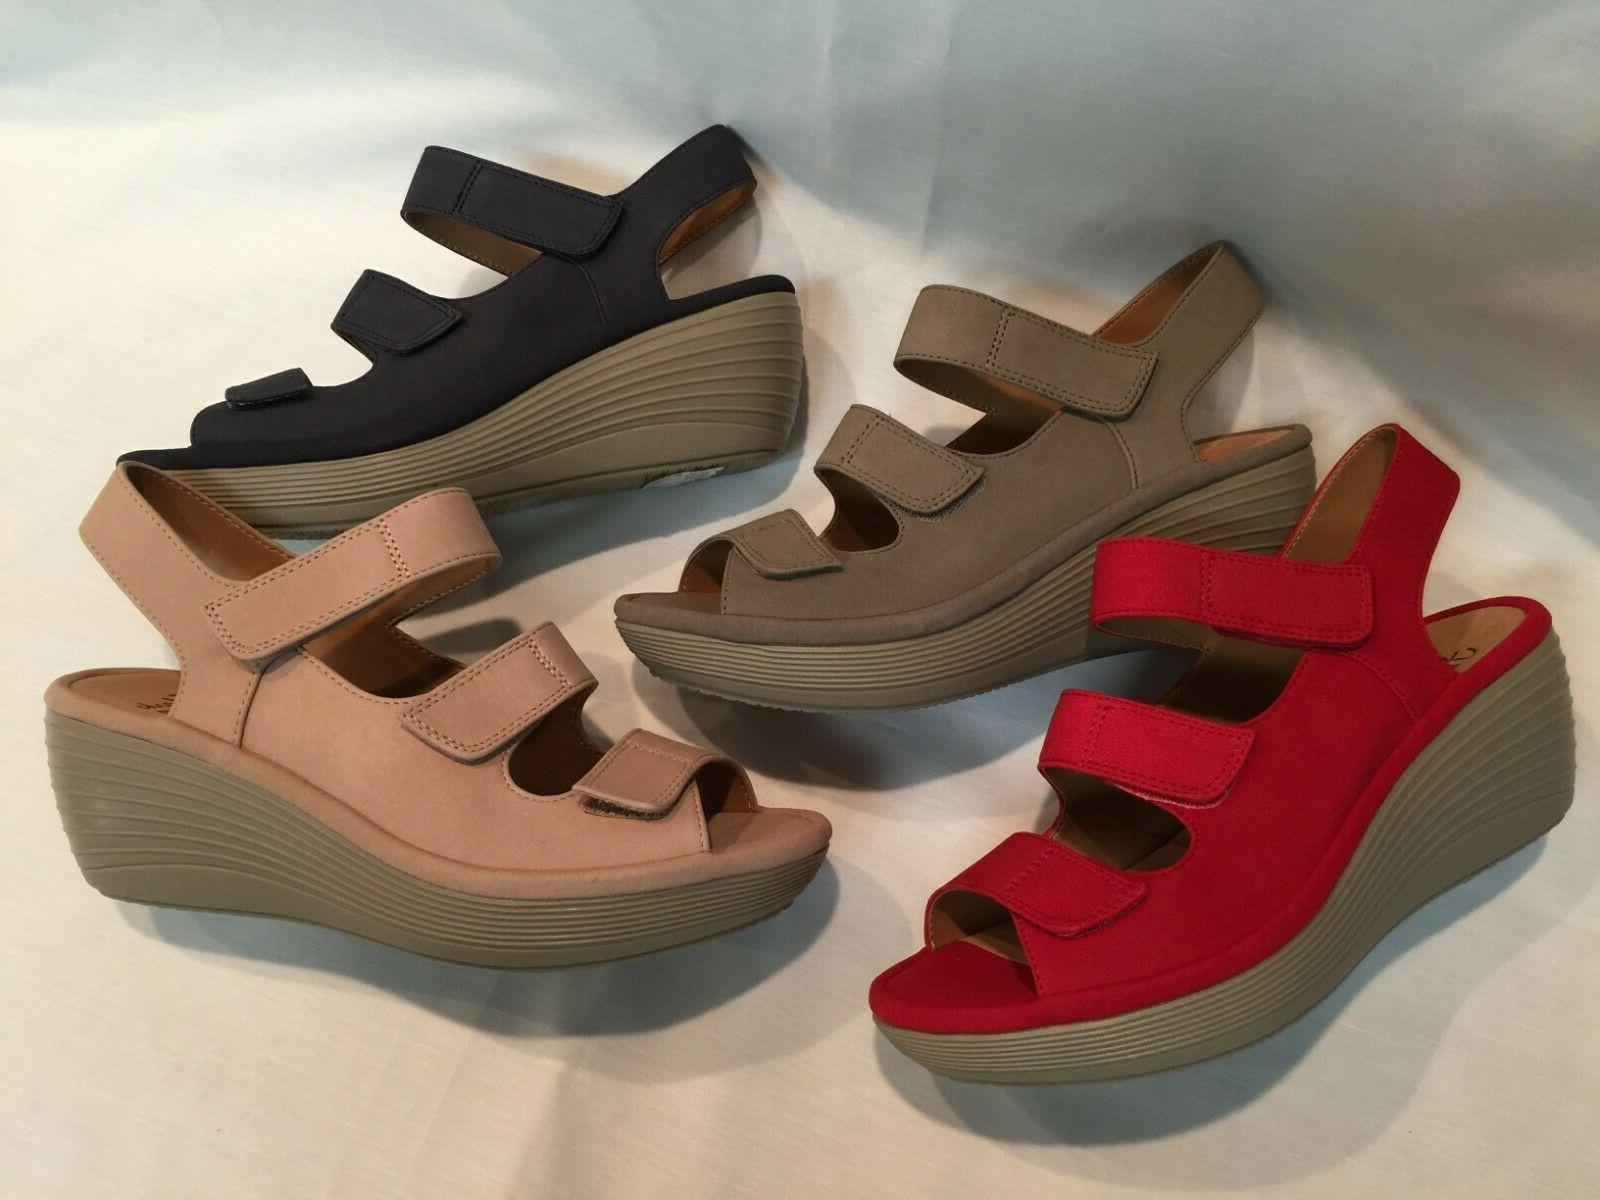 new collection nubuck wedge sandals reedly juno